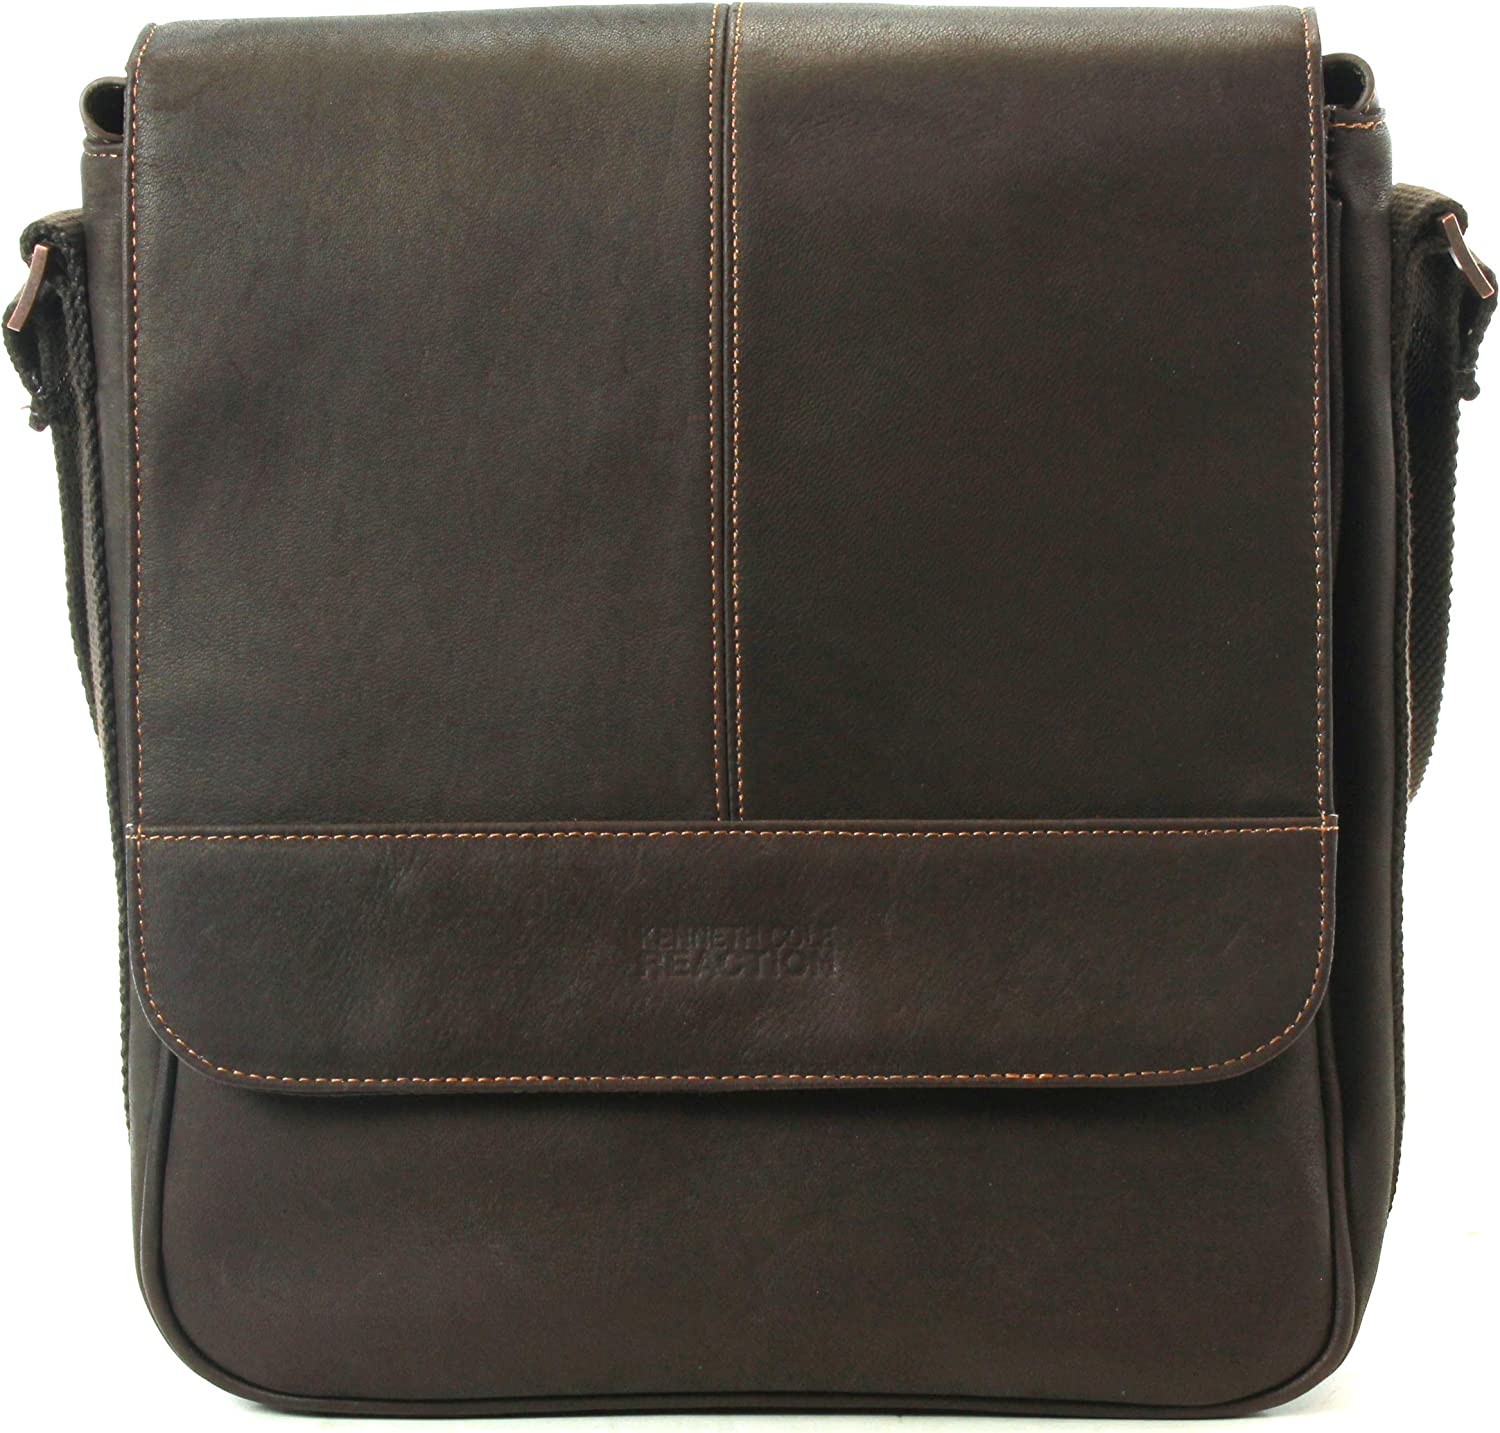 Kenneth Cole Reaction Purchase Colombian Compartment Leather Single unisex Flapo